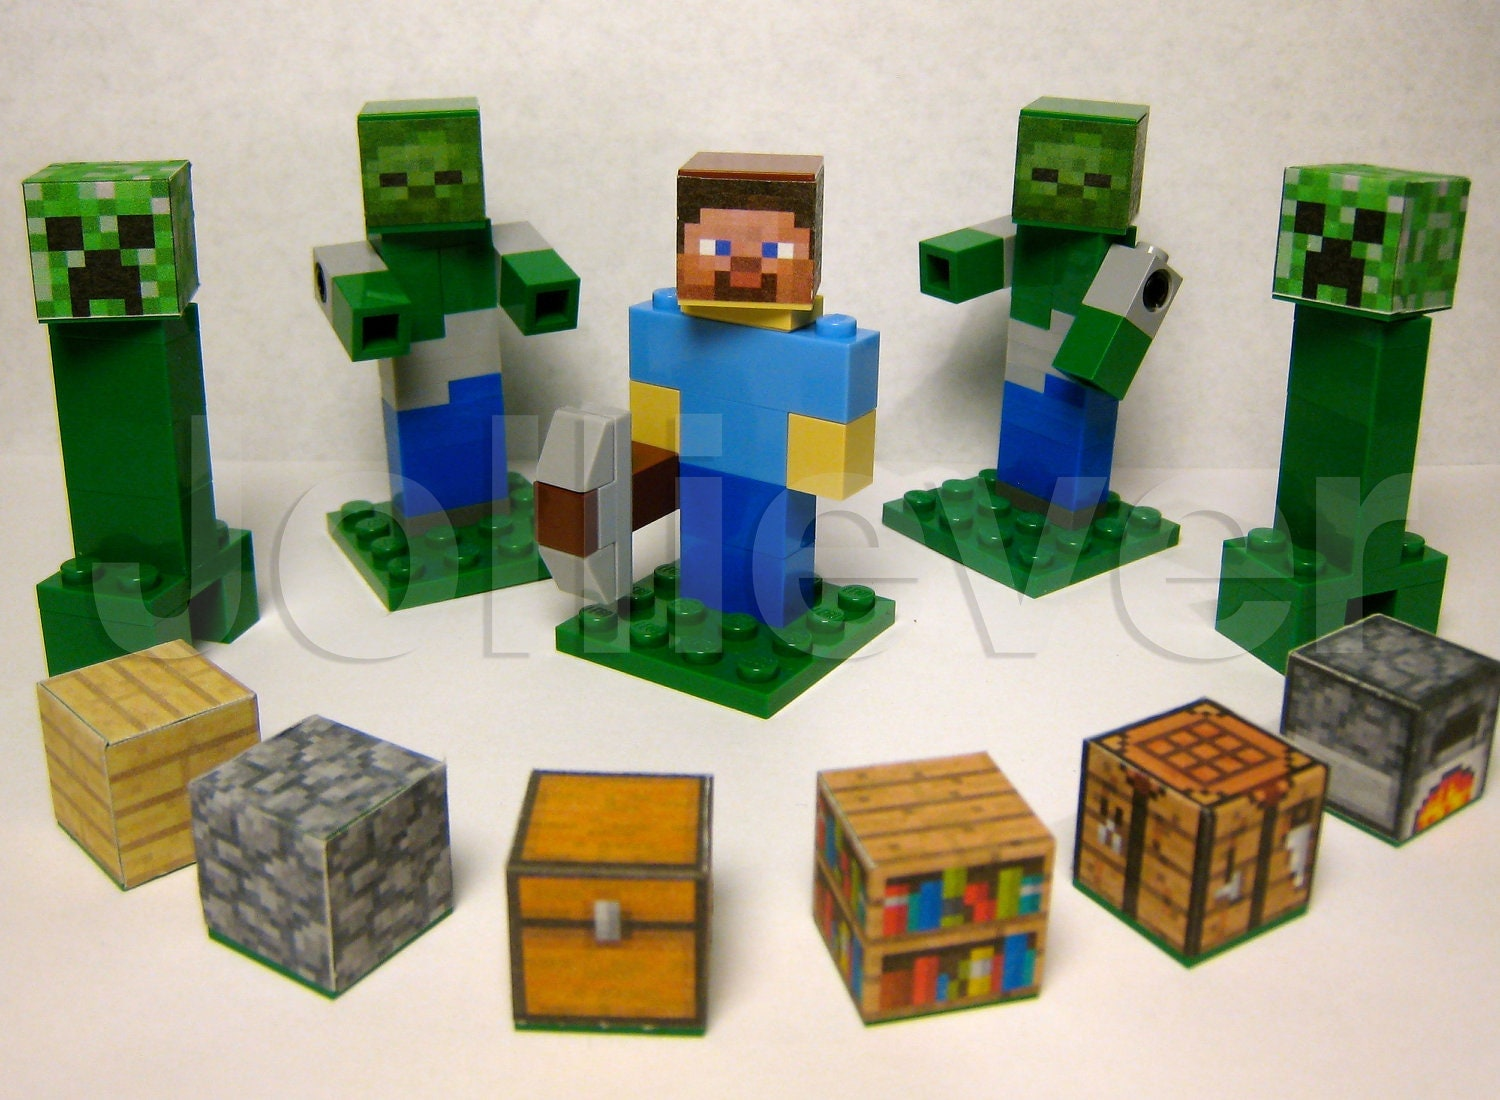 Lego minecraft custom steve character with pickaxe 2 zombies for Zombie build